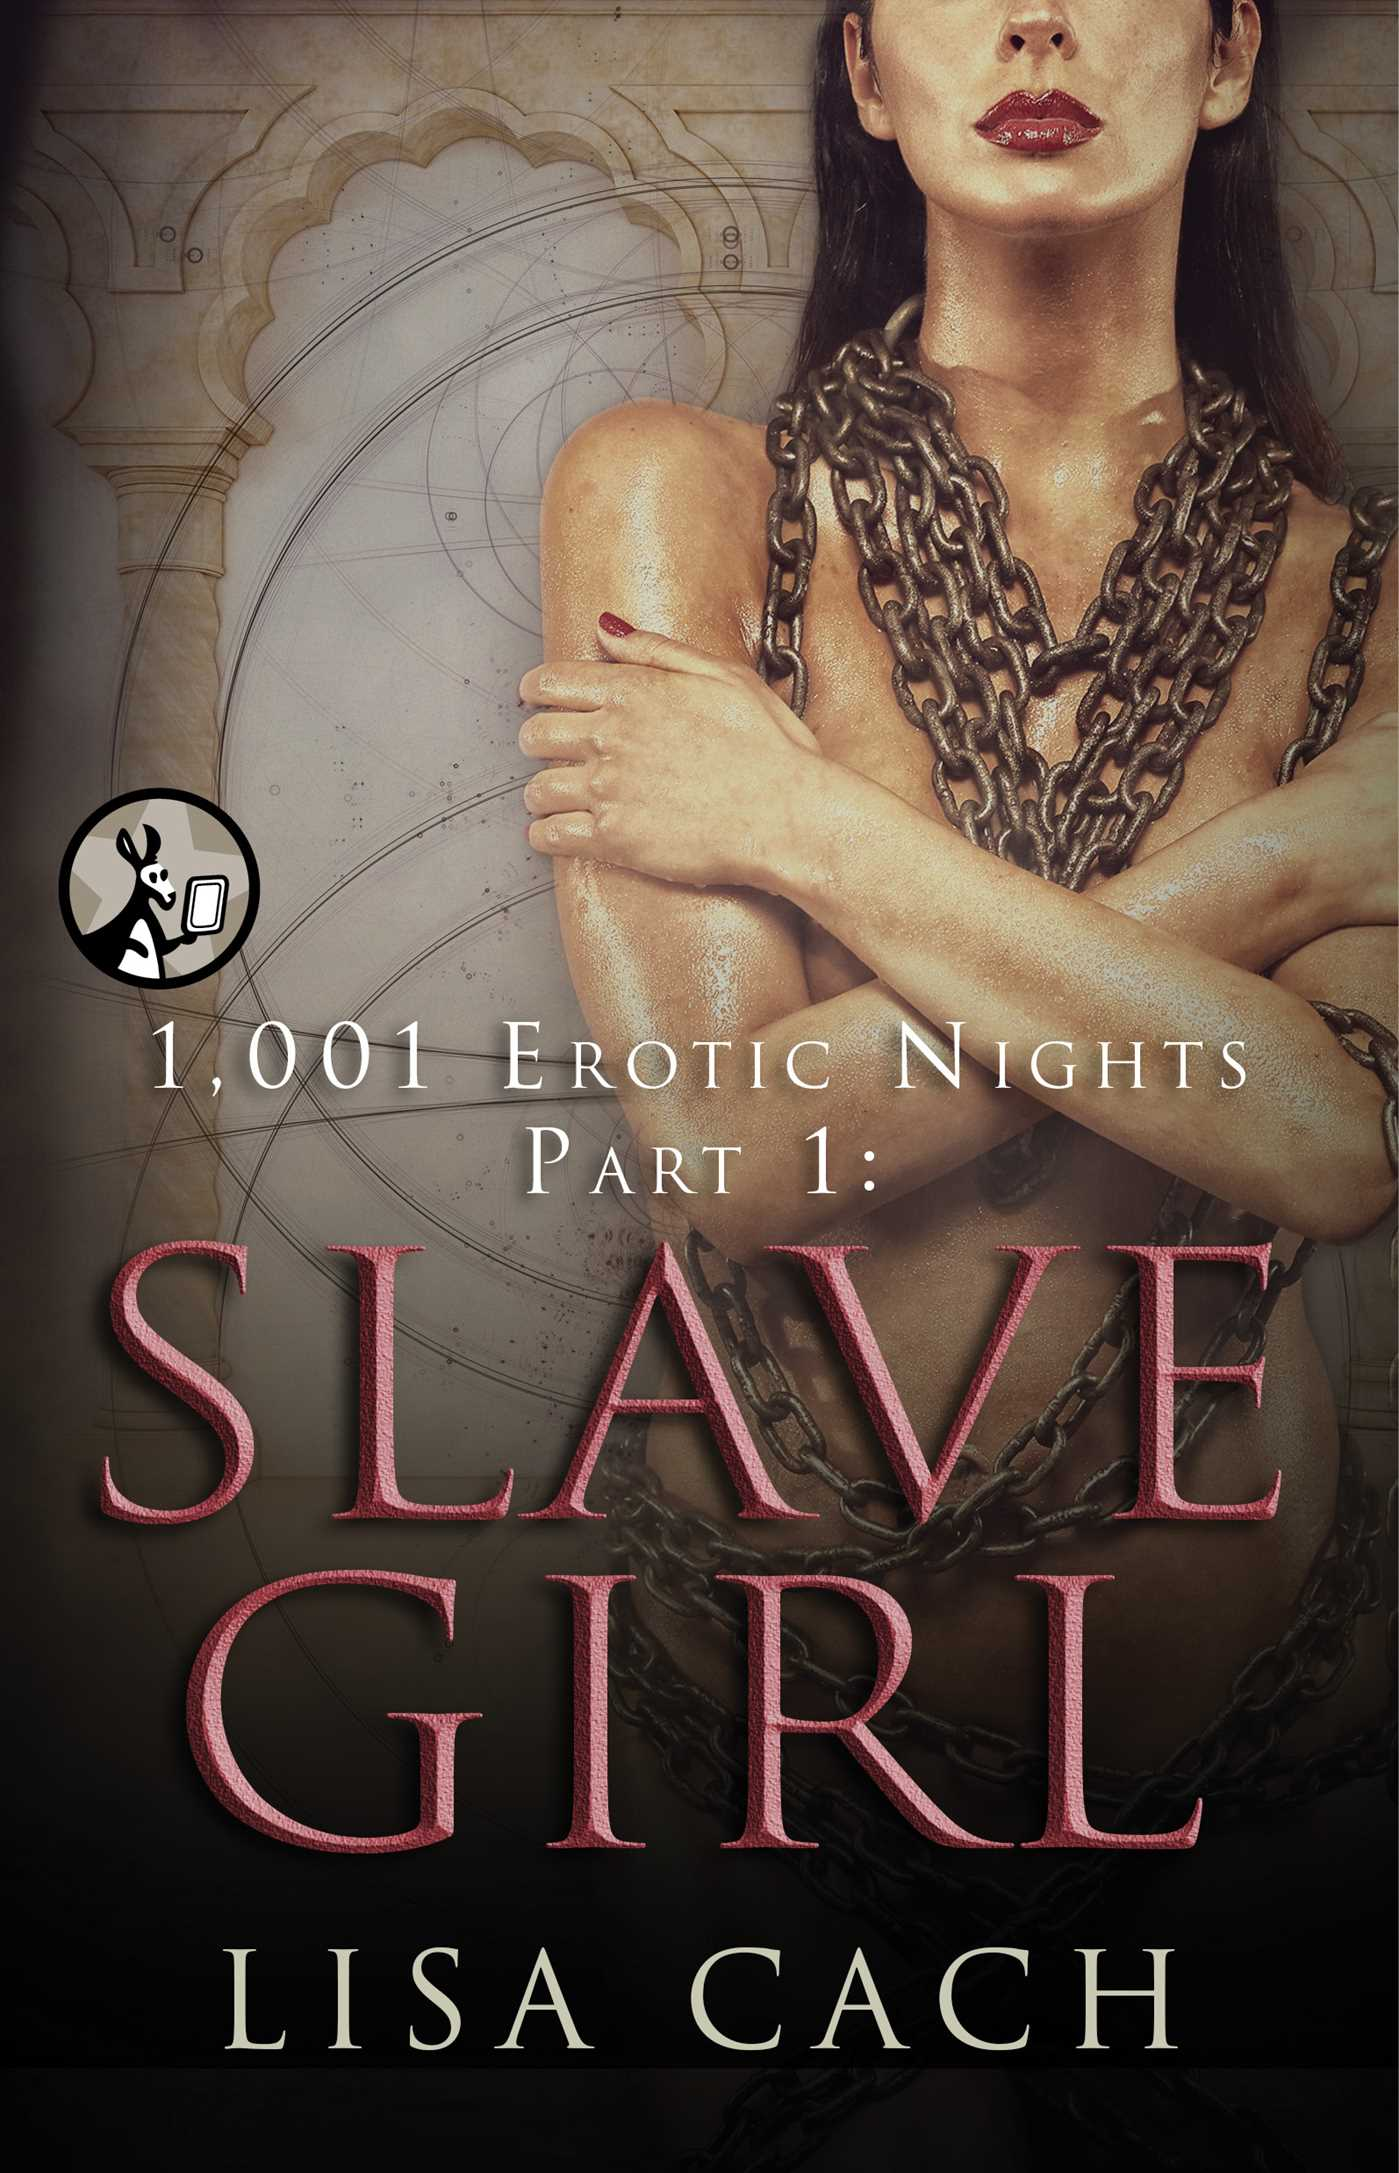 Book Cover Image (jpg): Slave Girl